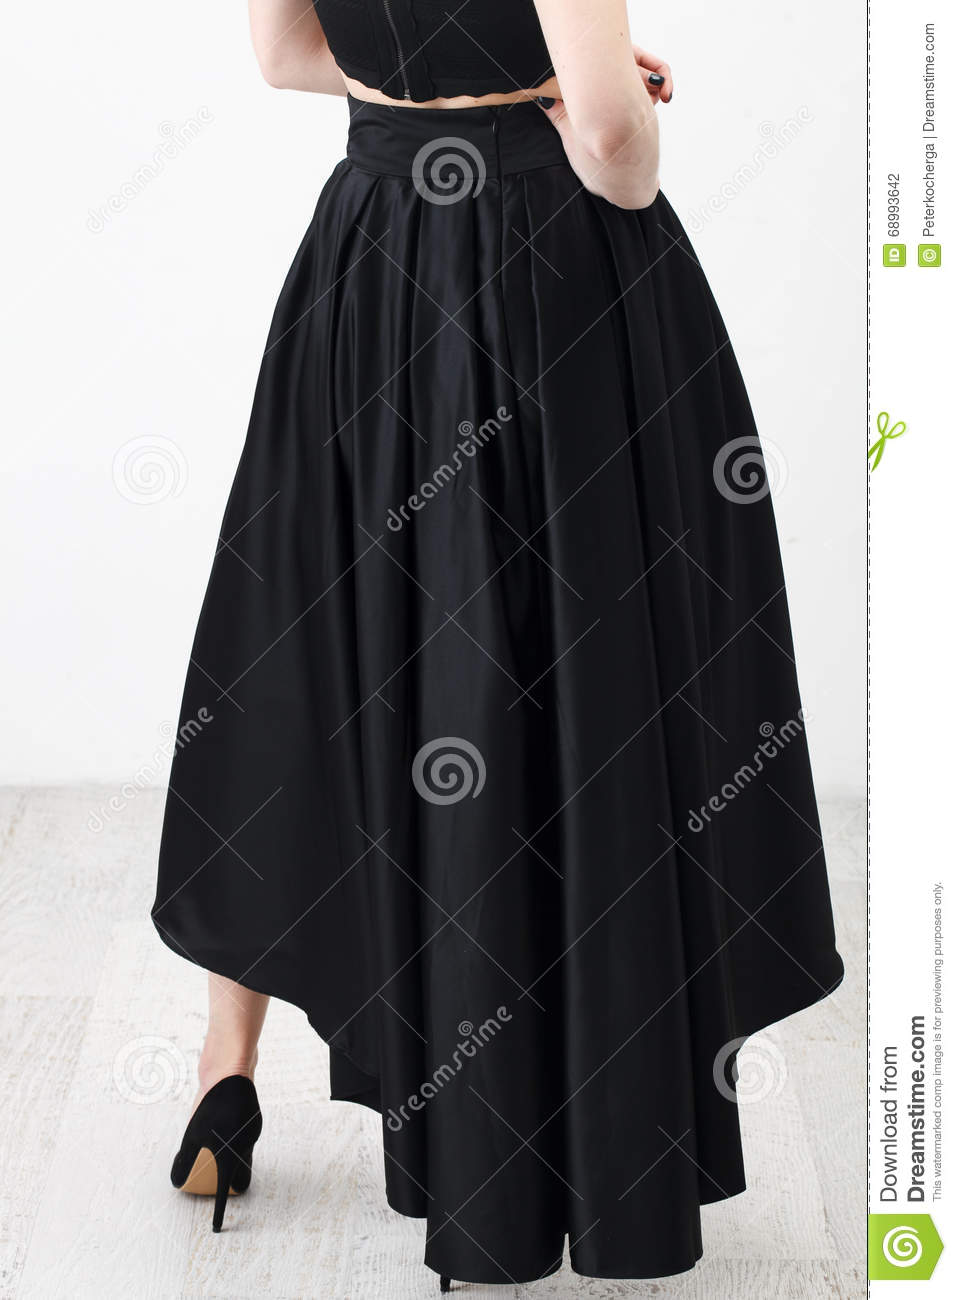 70a8b13aff Fashionista In Black Shirt And Skirt Stock Photo - Image of isolated ...